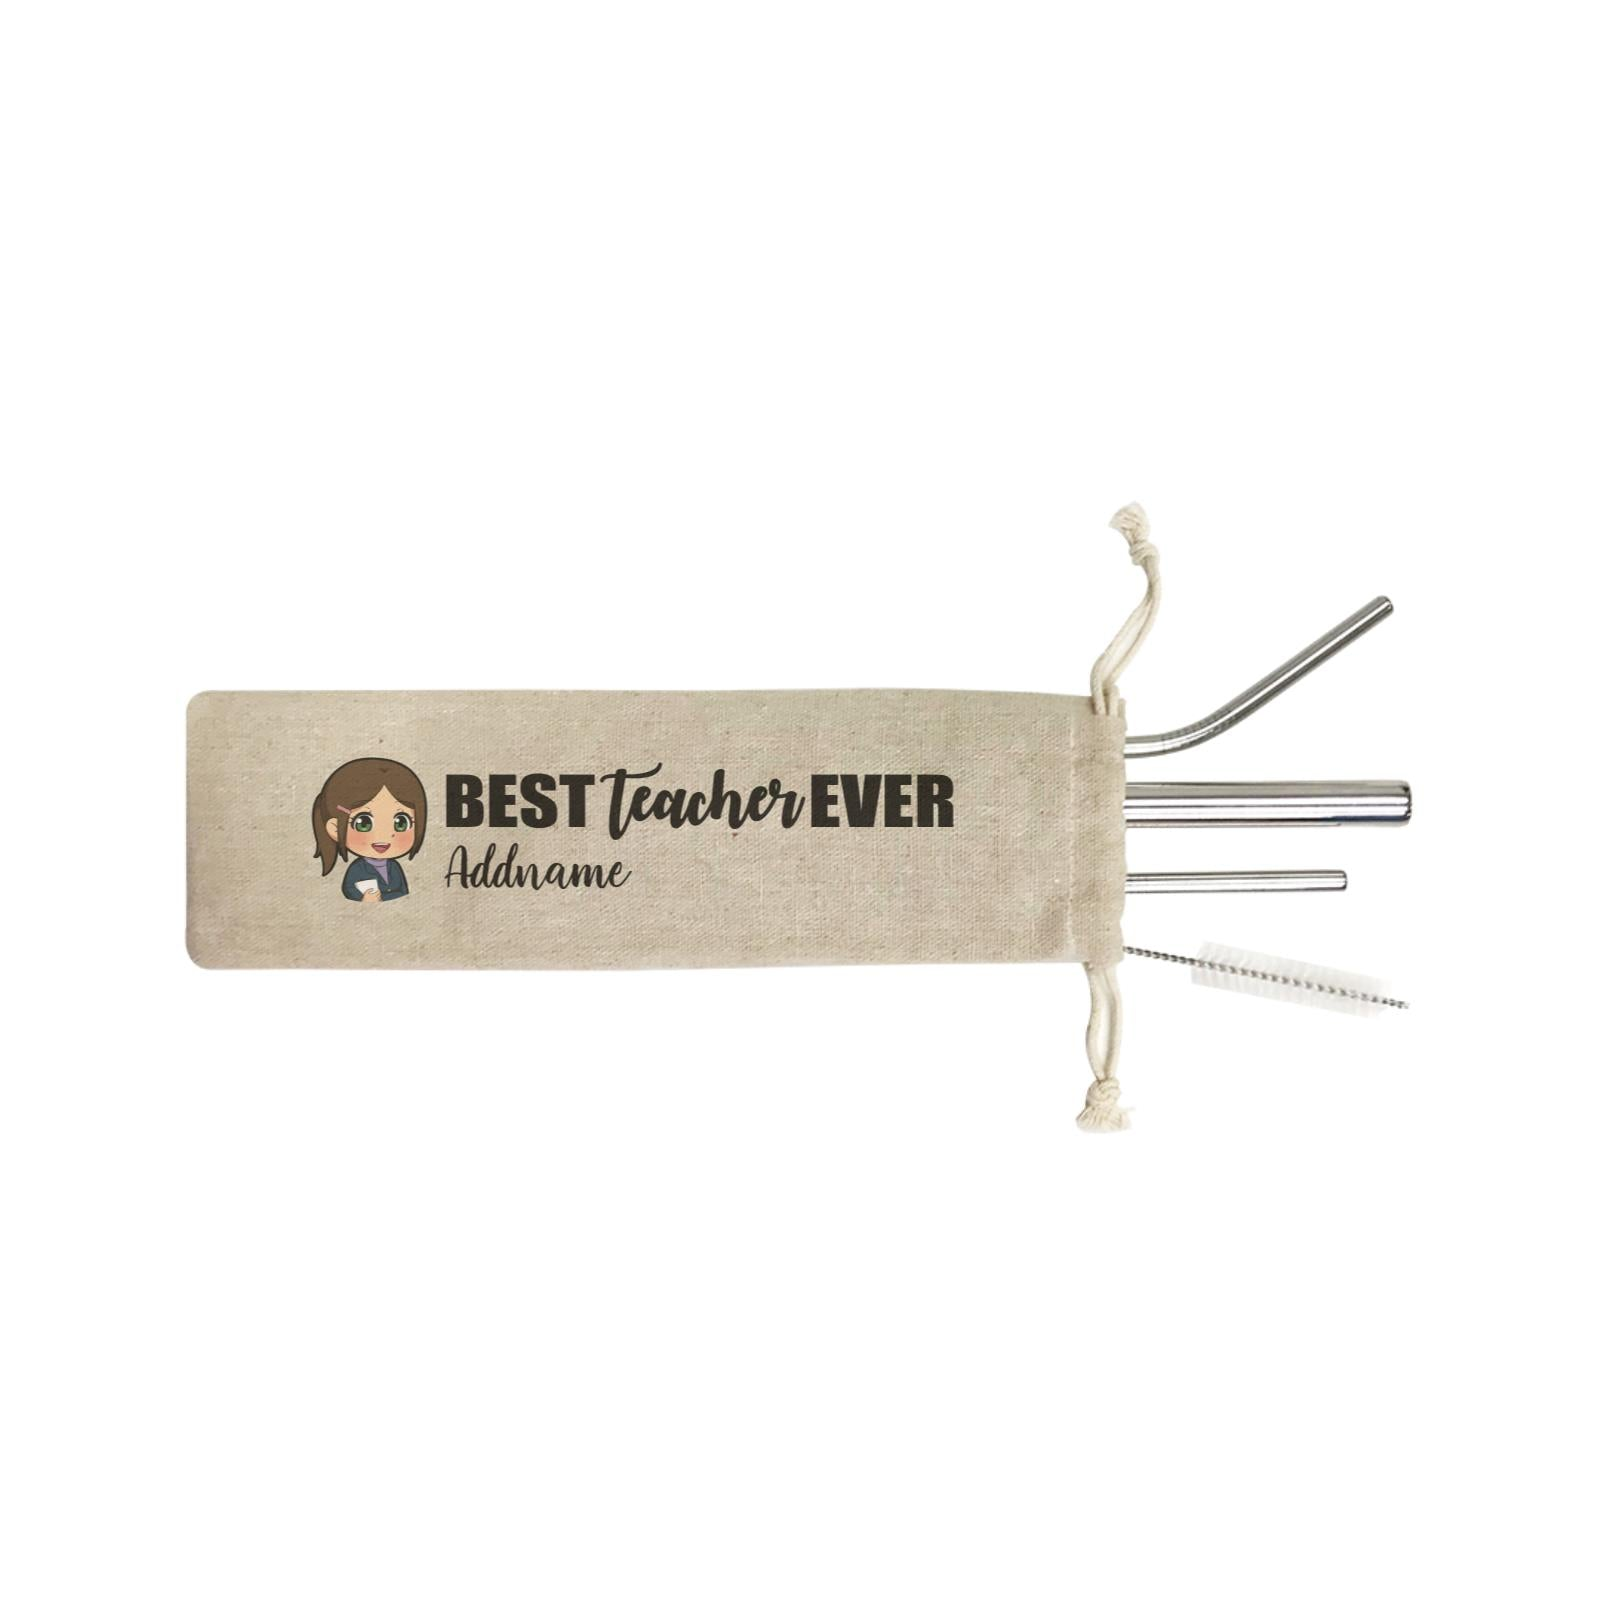 Chibi Teachers Chinese Woman Best Teacher Ever Addname SB 4-In-1 Stainless Steel Straw Set in Satchel